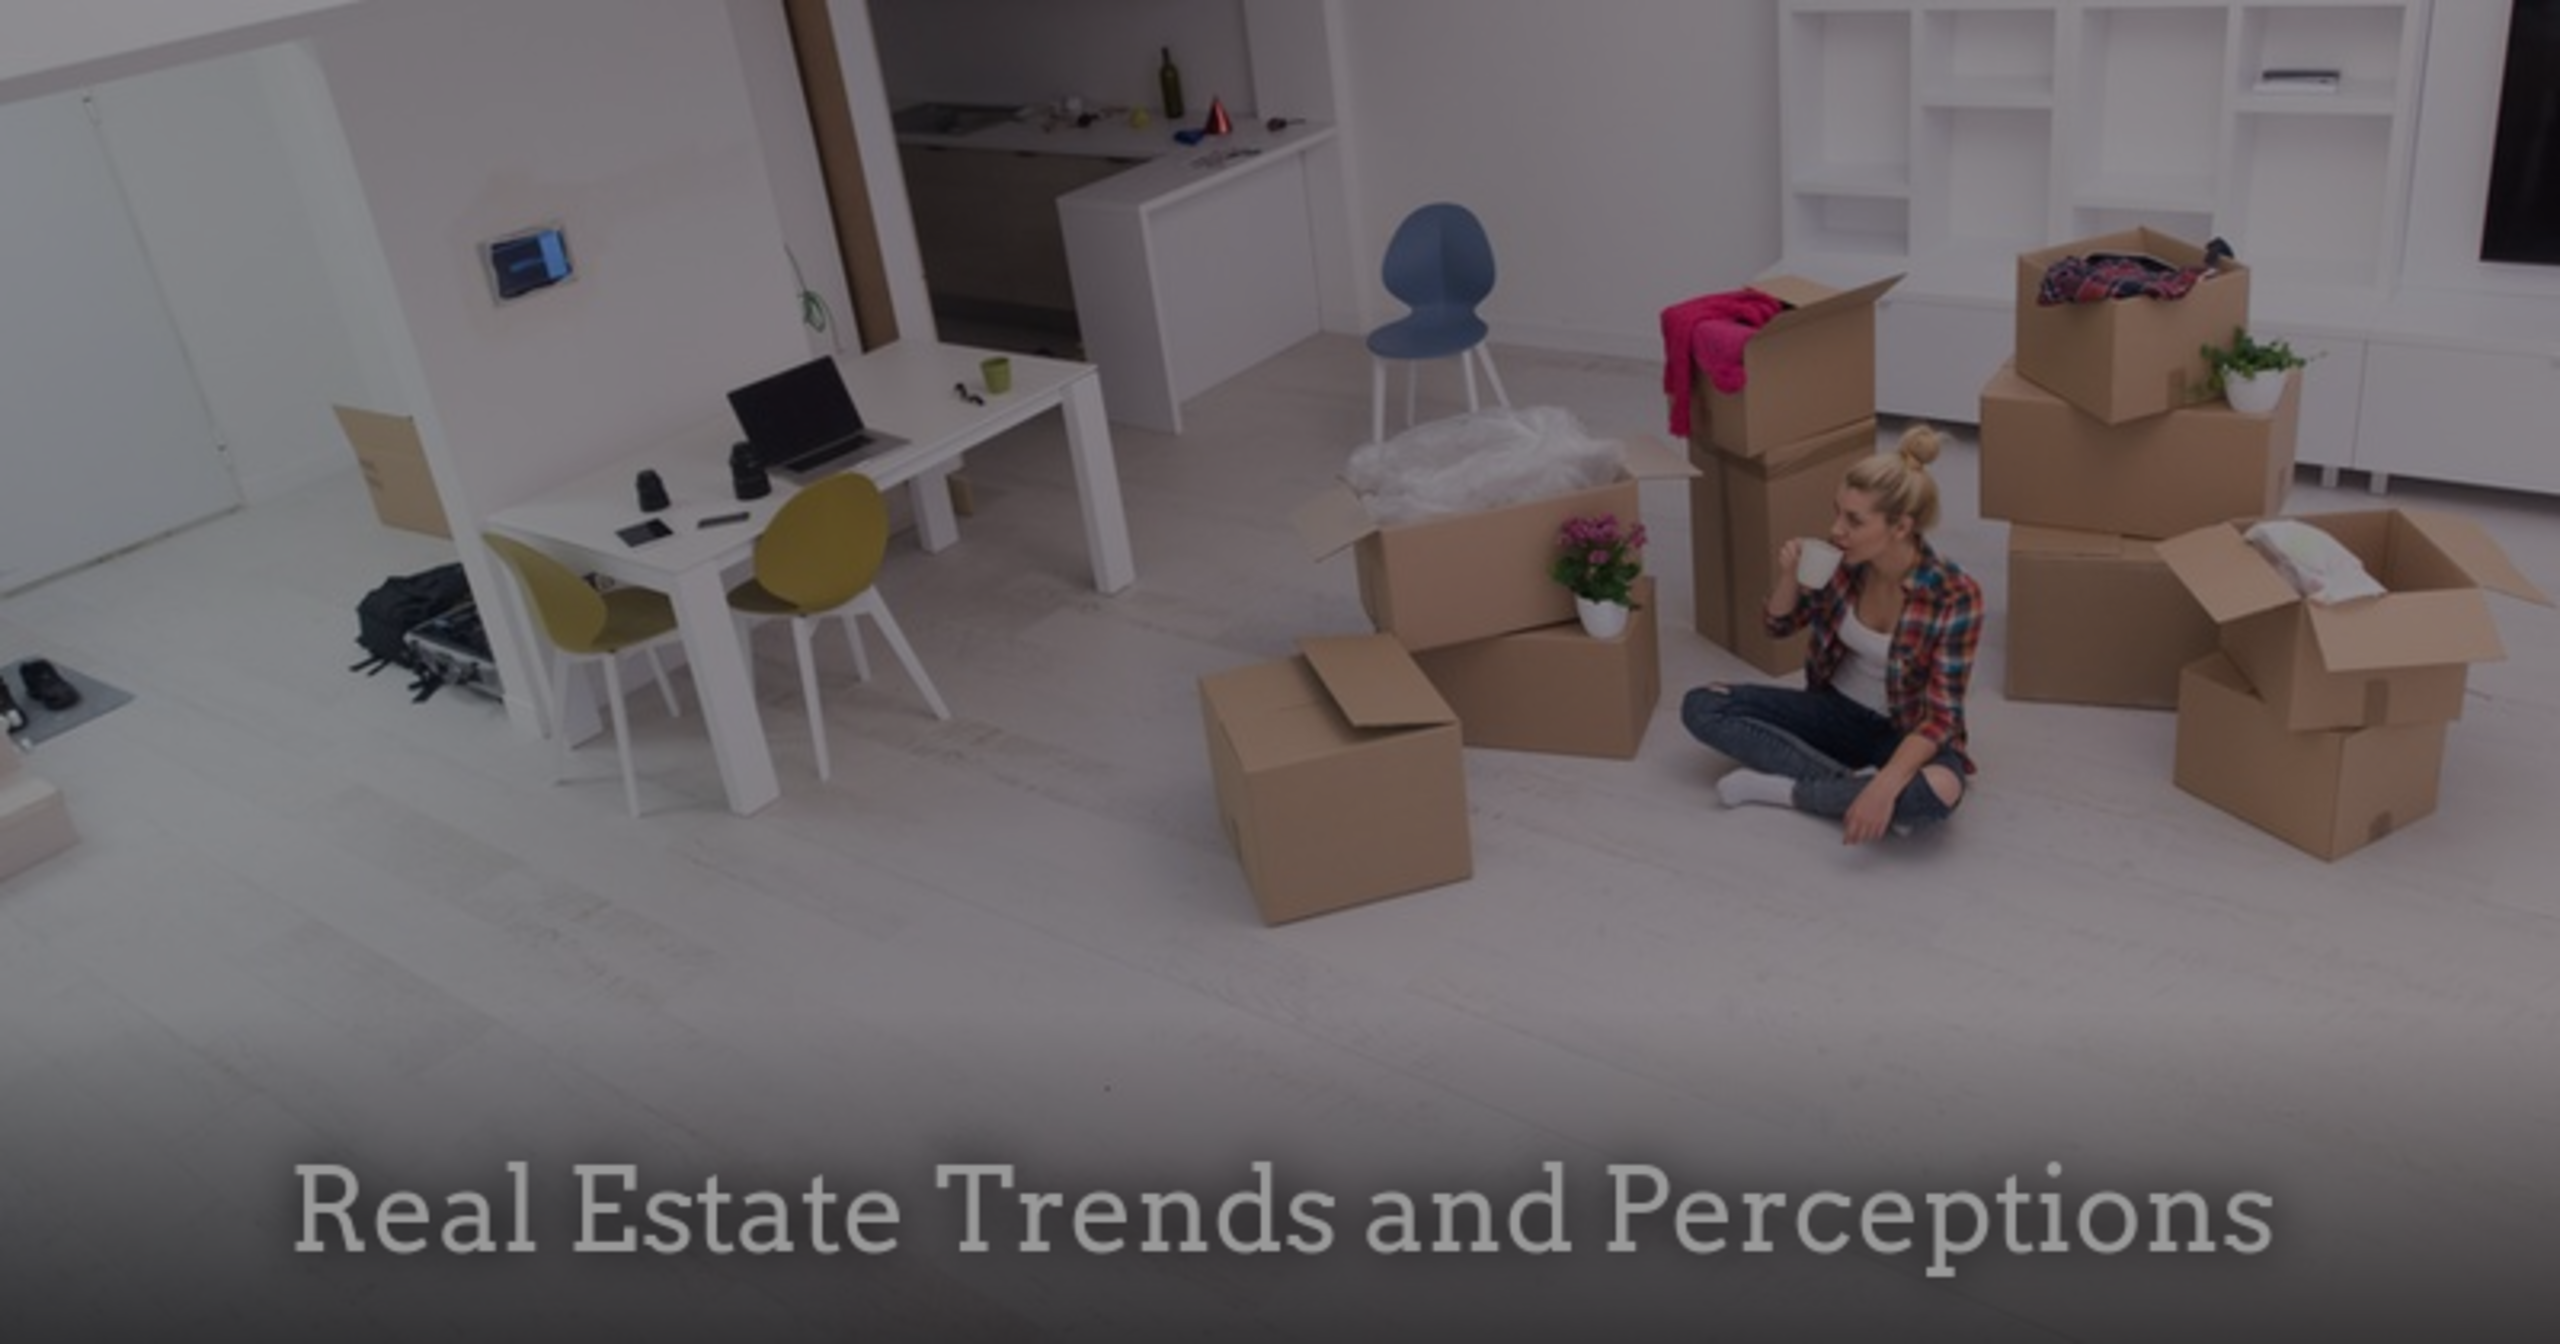 Real Estate Trends and Perceptions